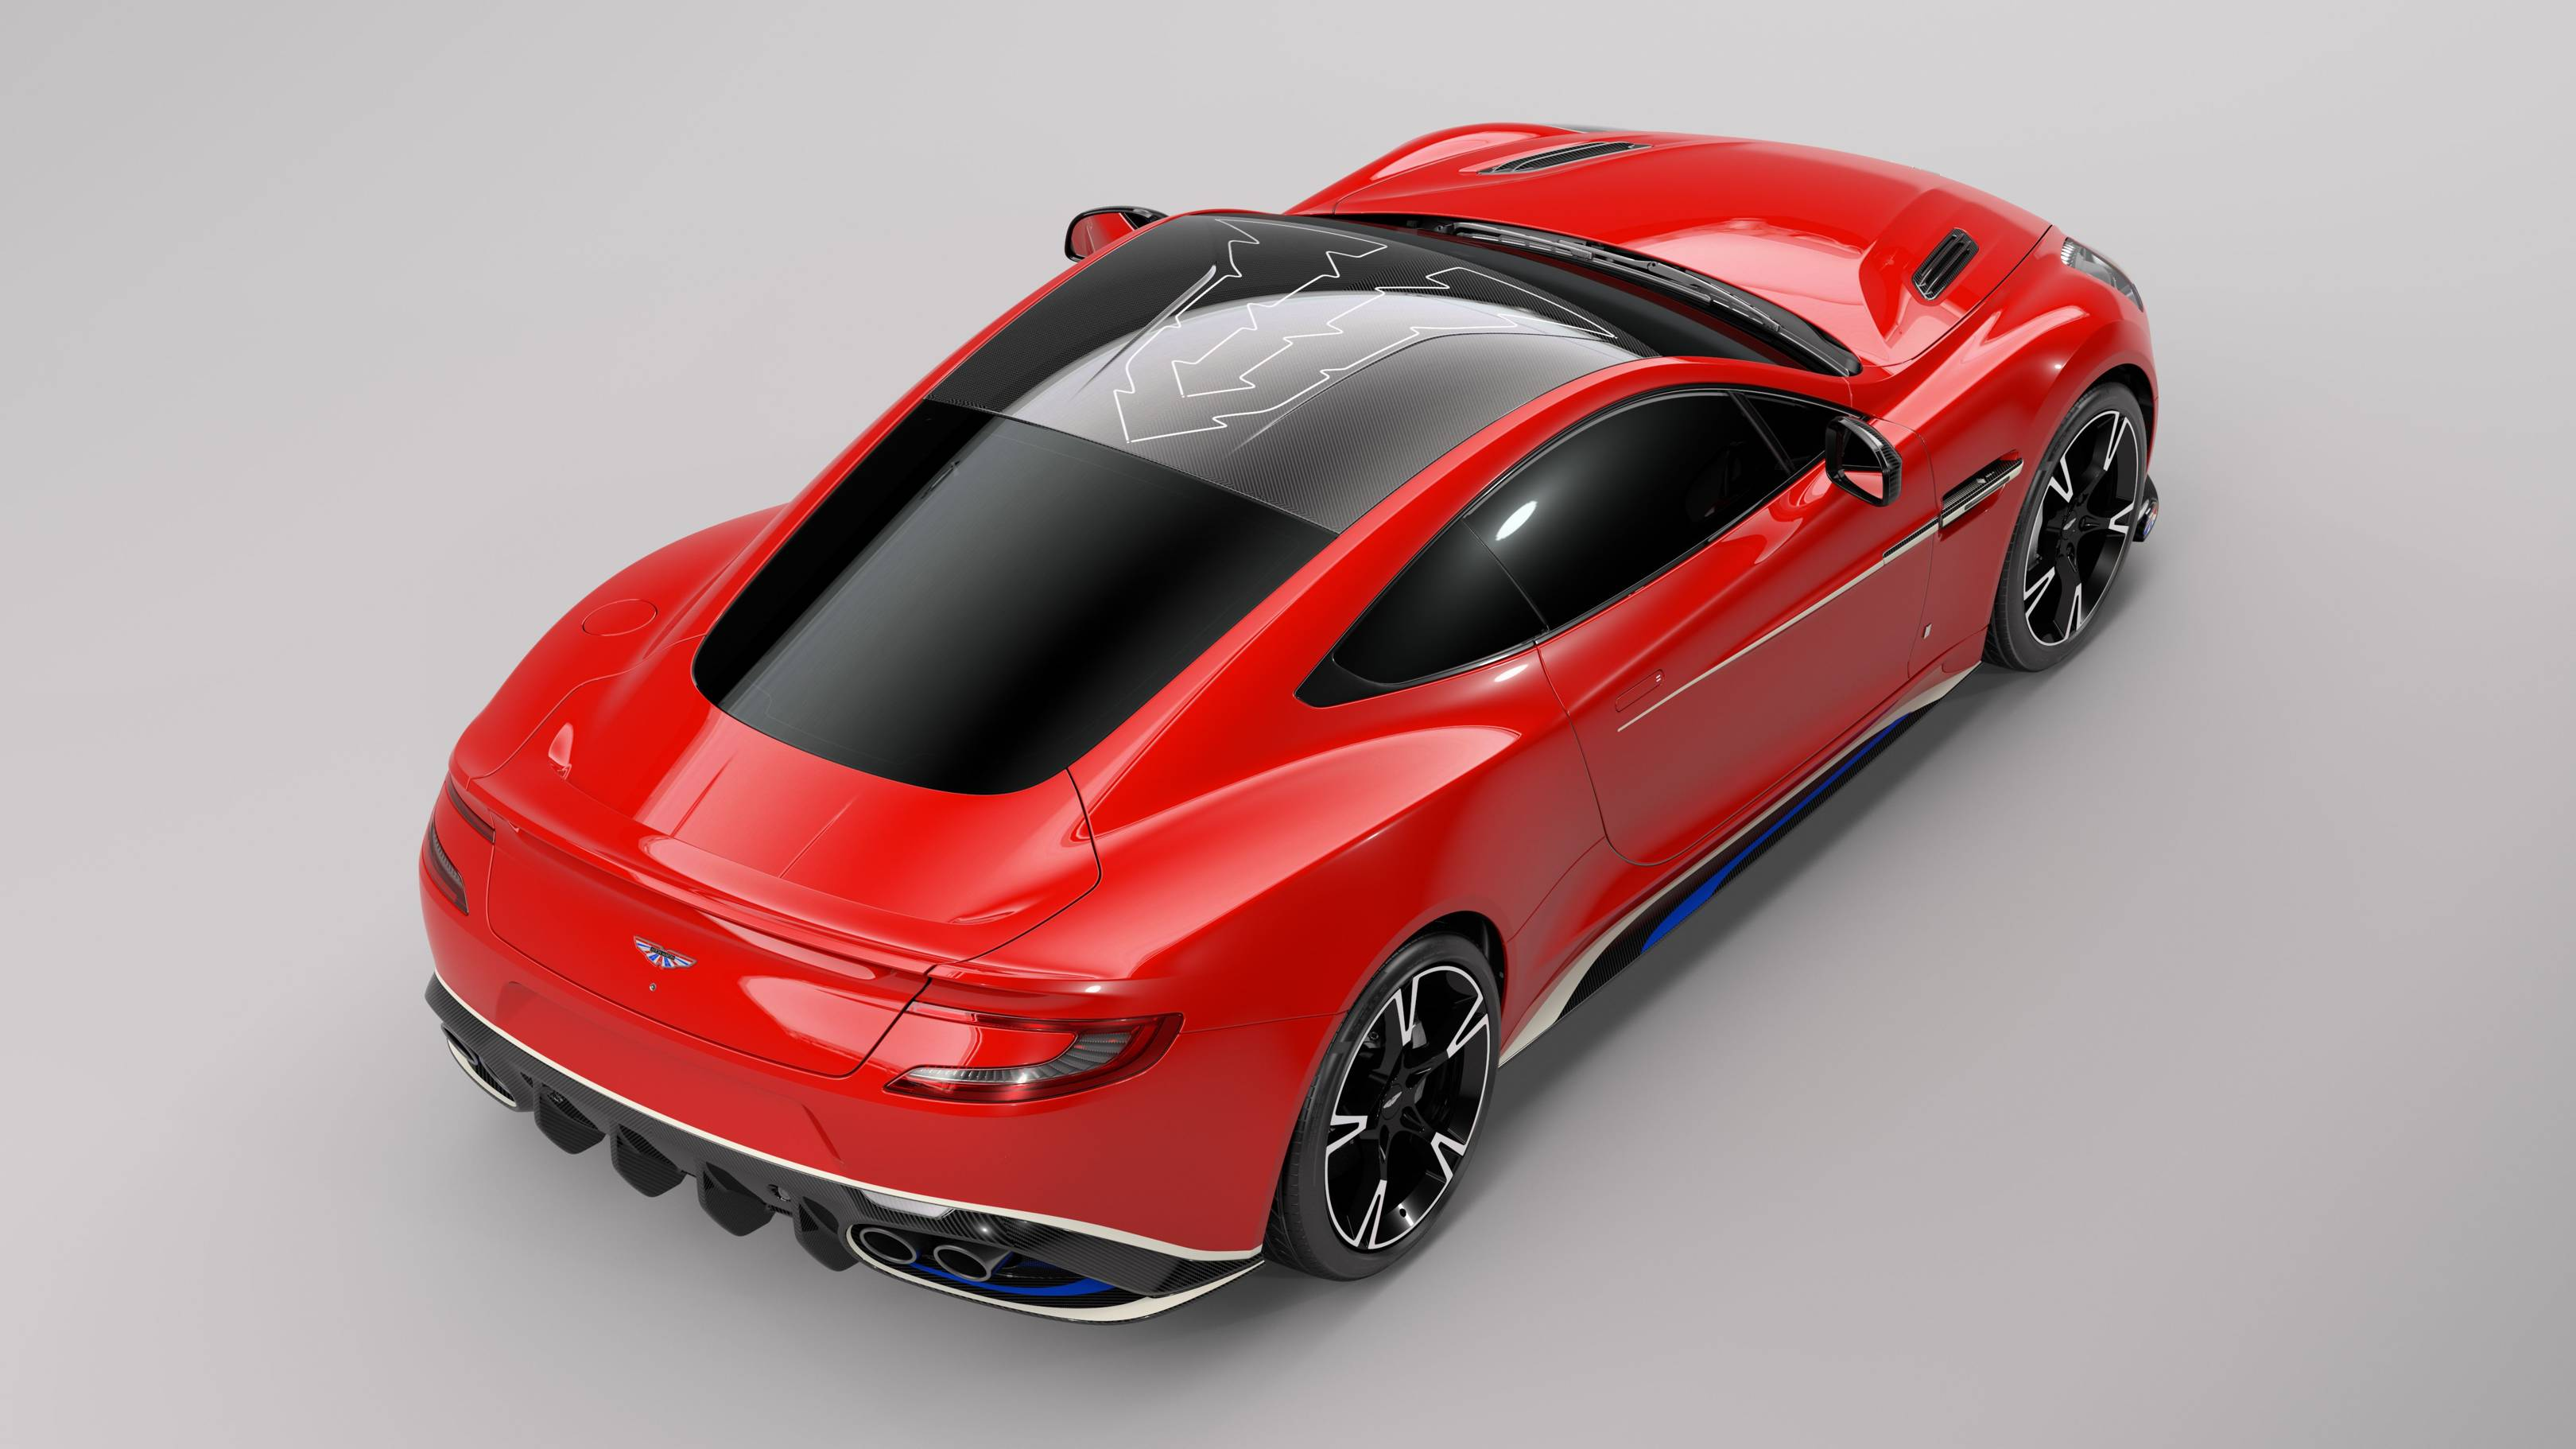 aston martin vanquish s red arrows edition | wired uk